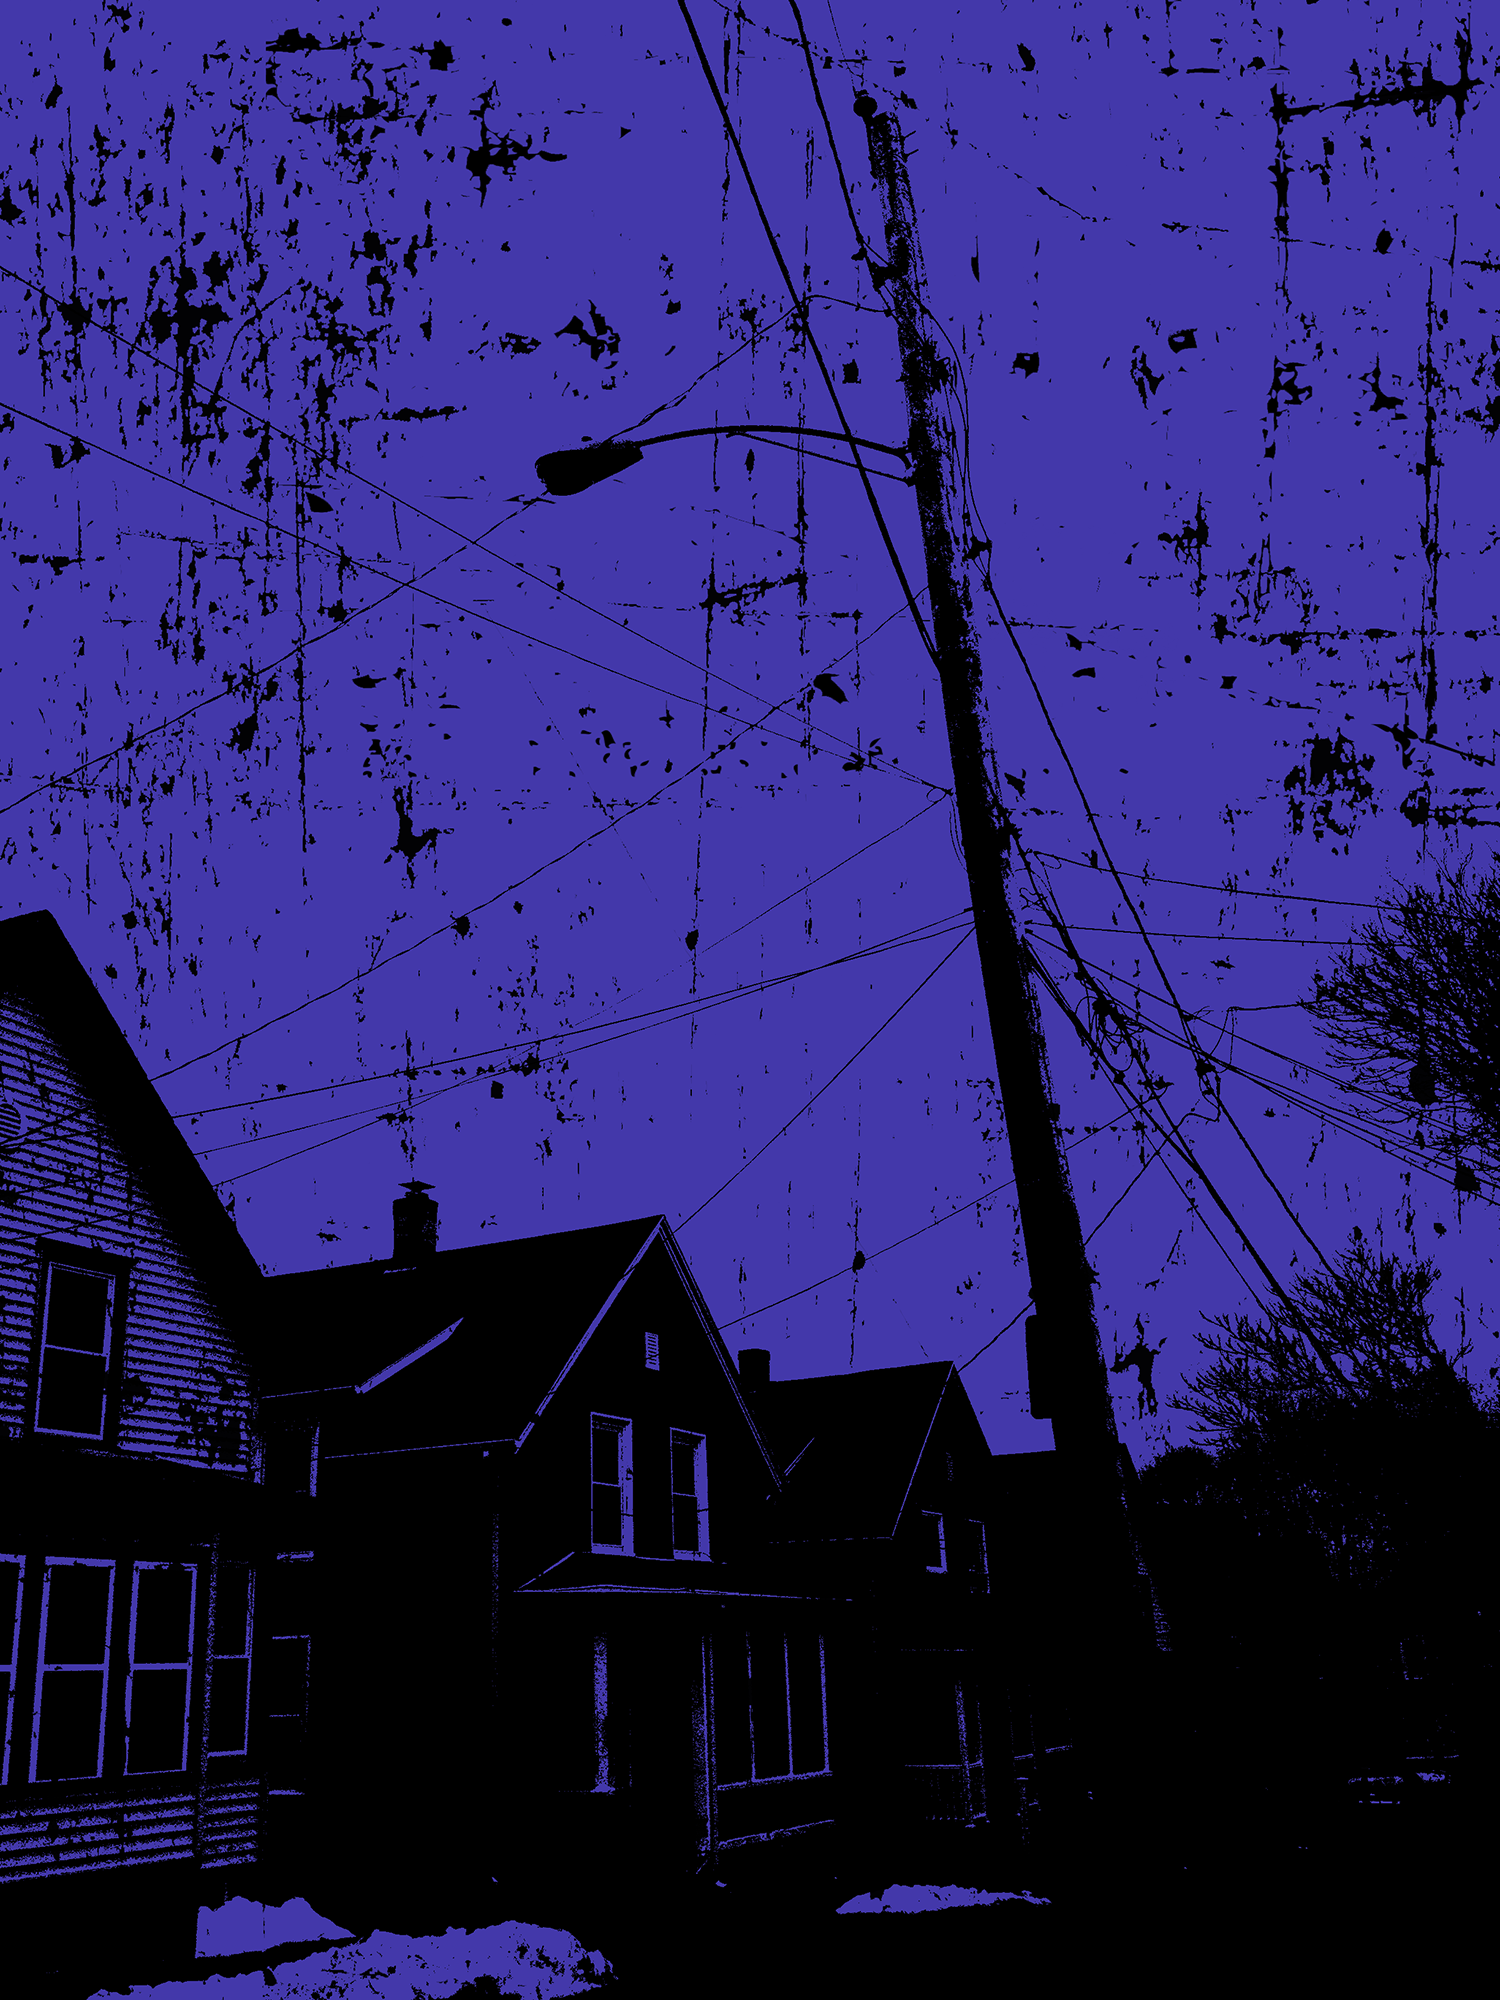 powerlines 10x13.3.png